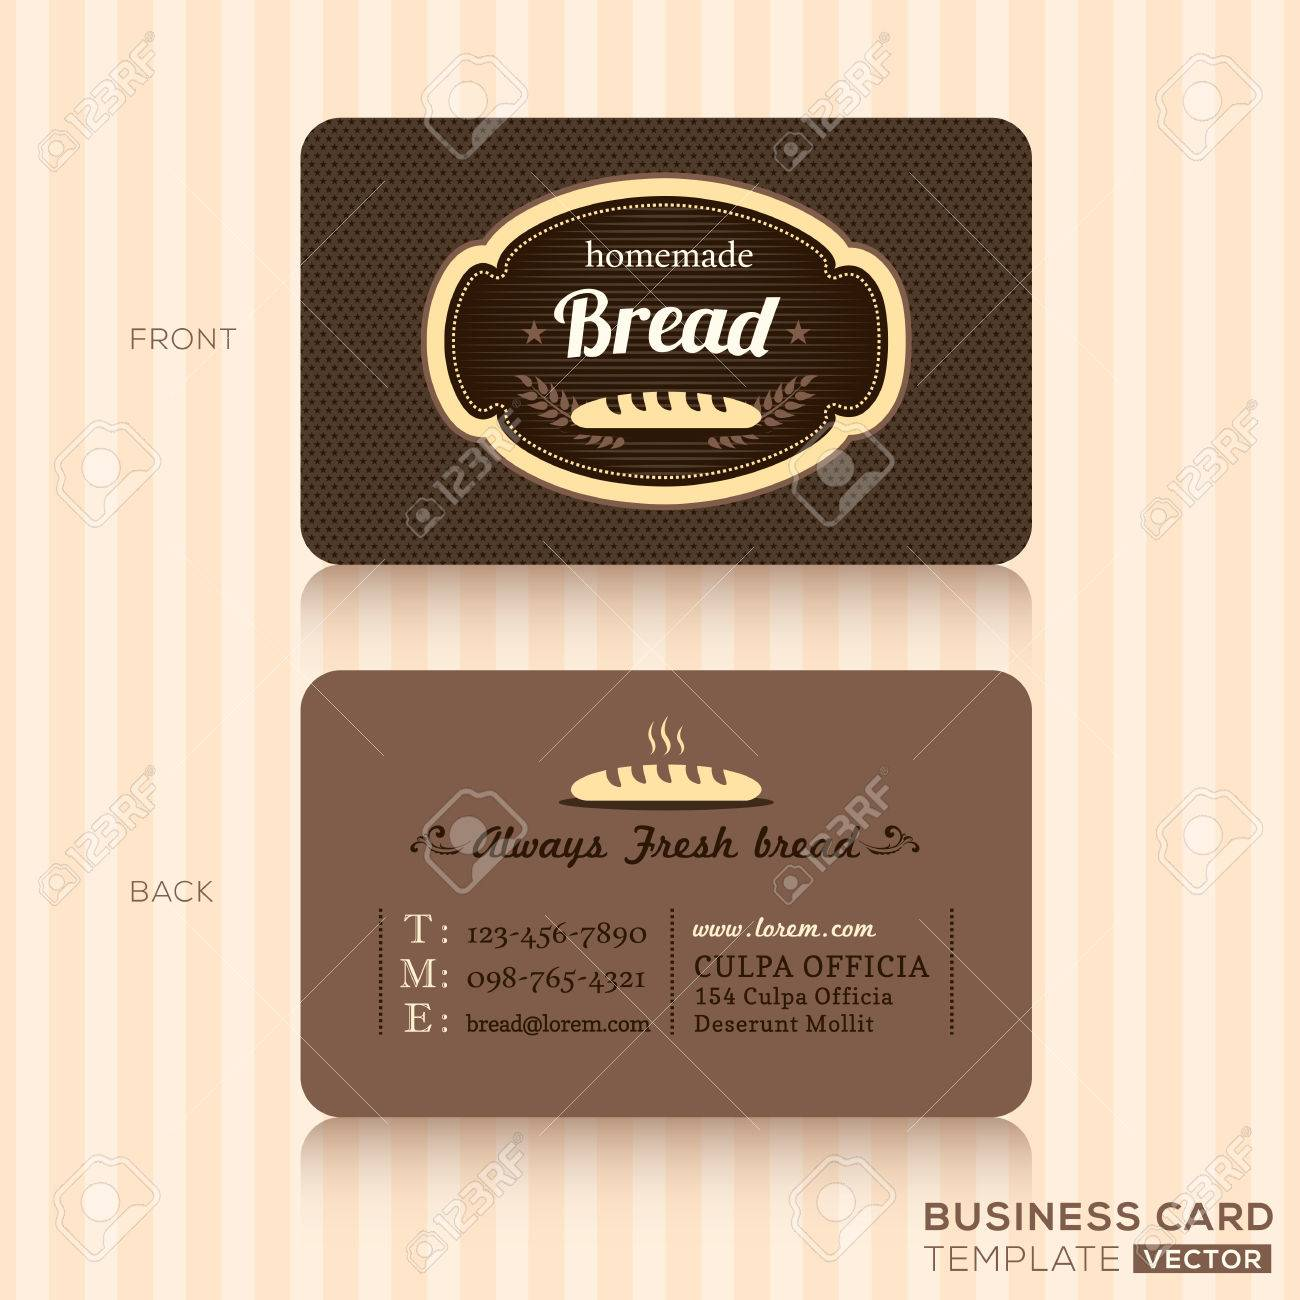 2668 bakery business card stock vector illustration and royalty bakery house business card design template magicingreecefo Images